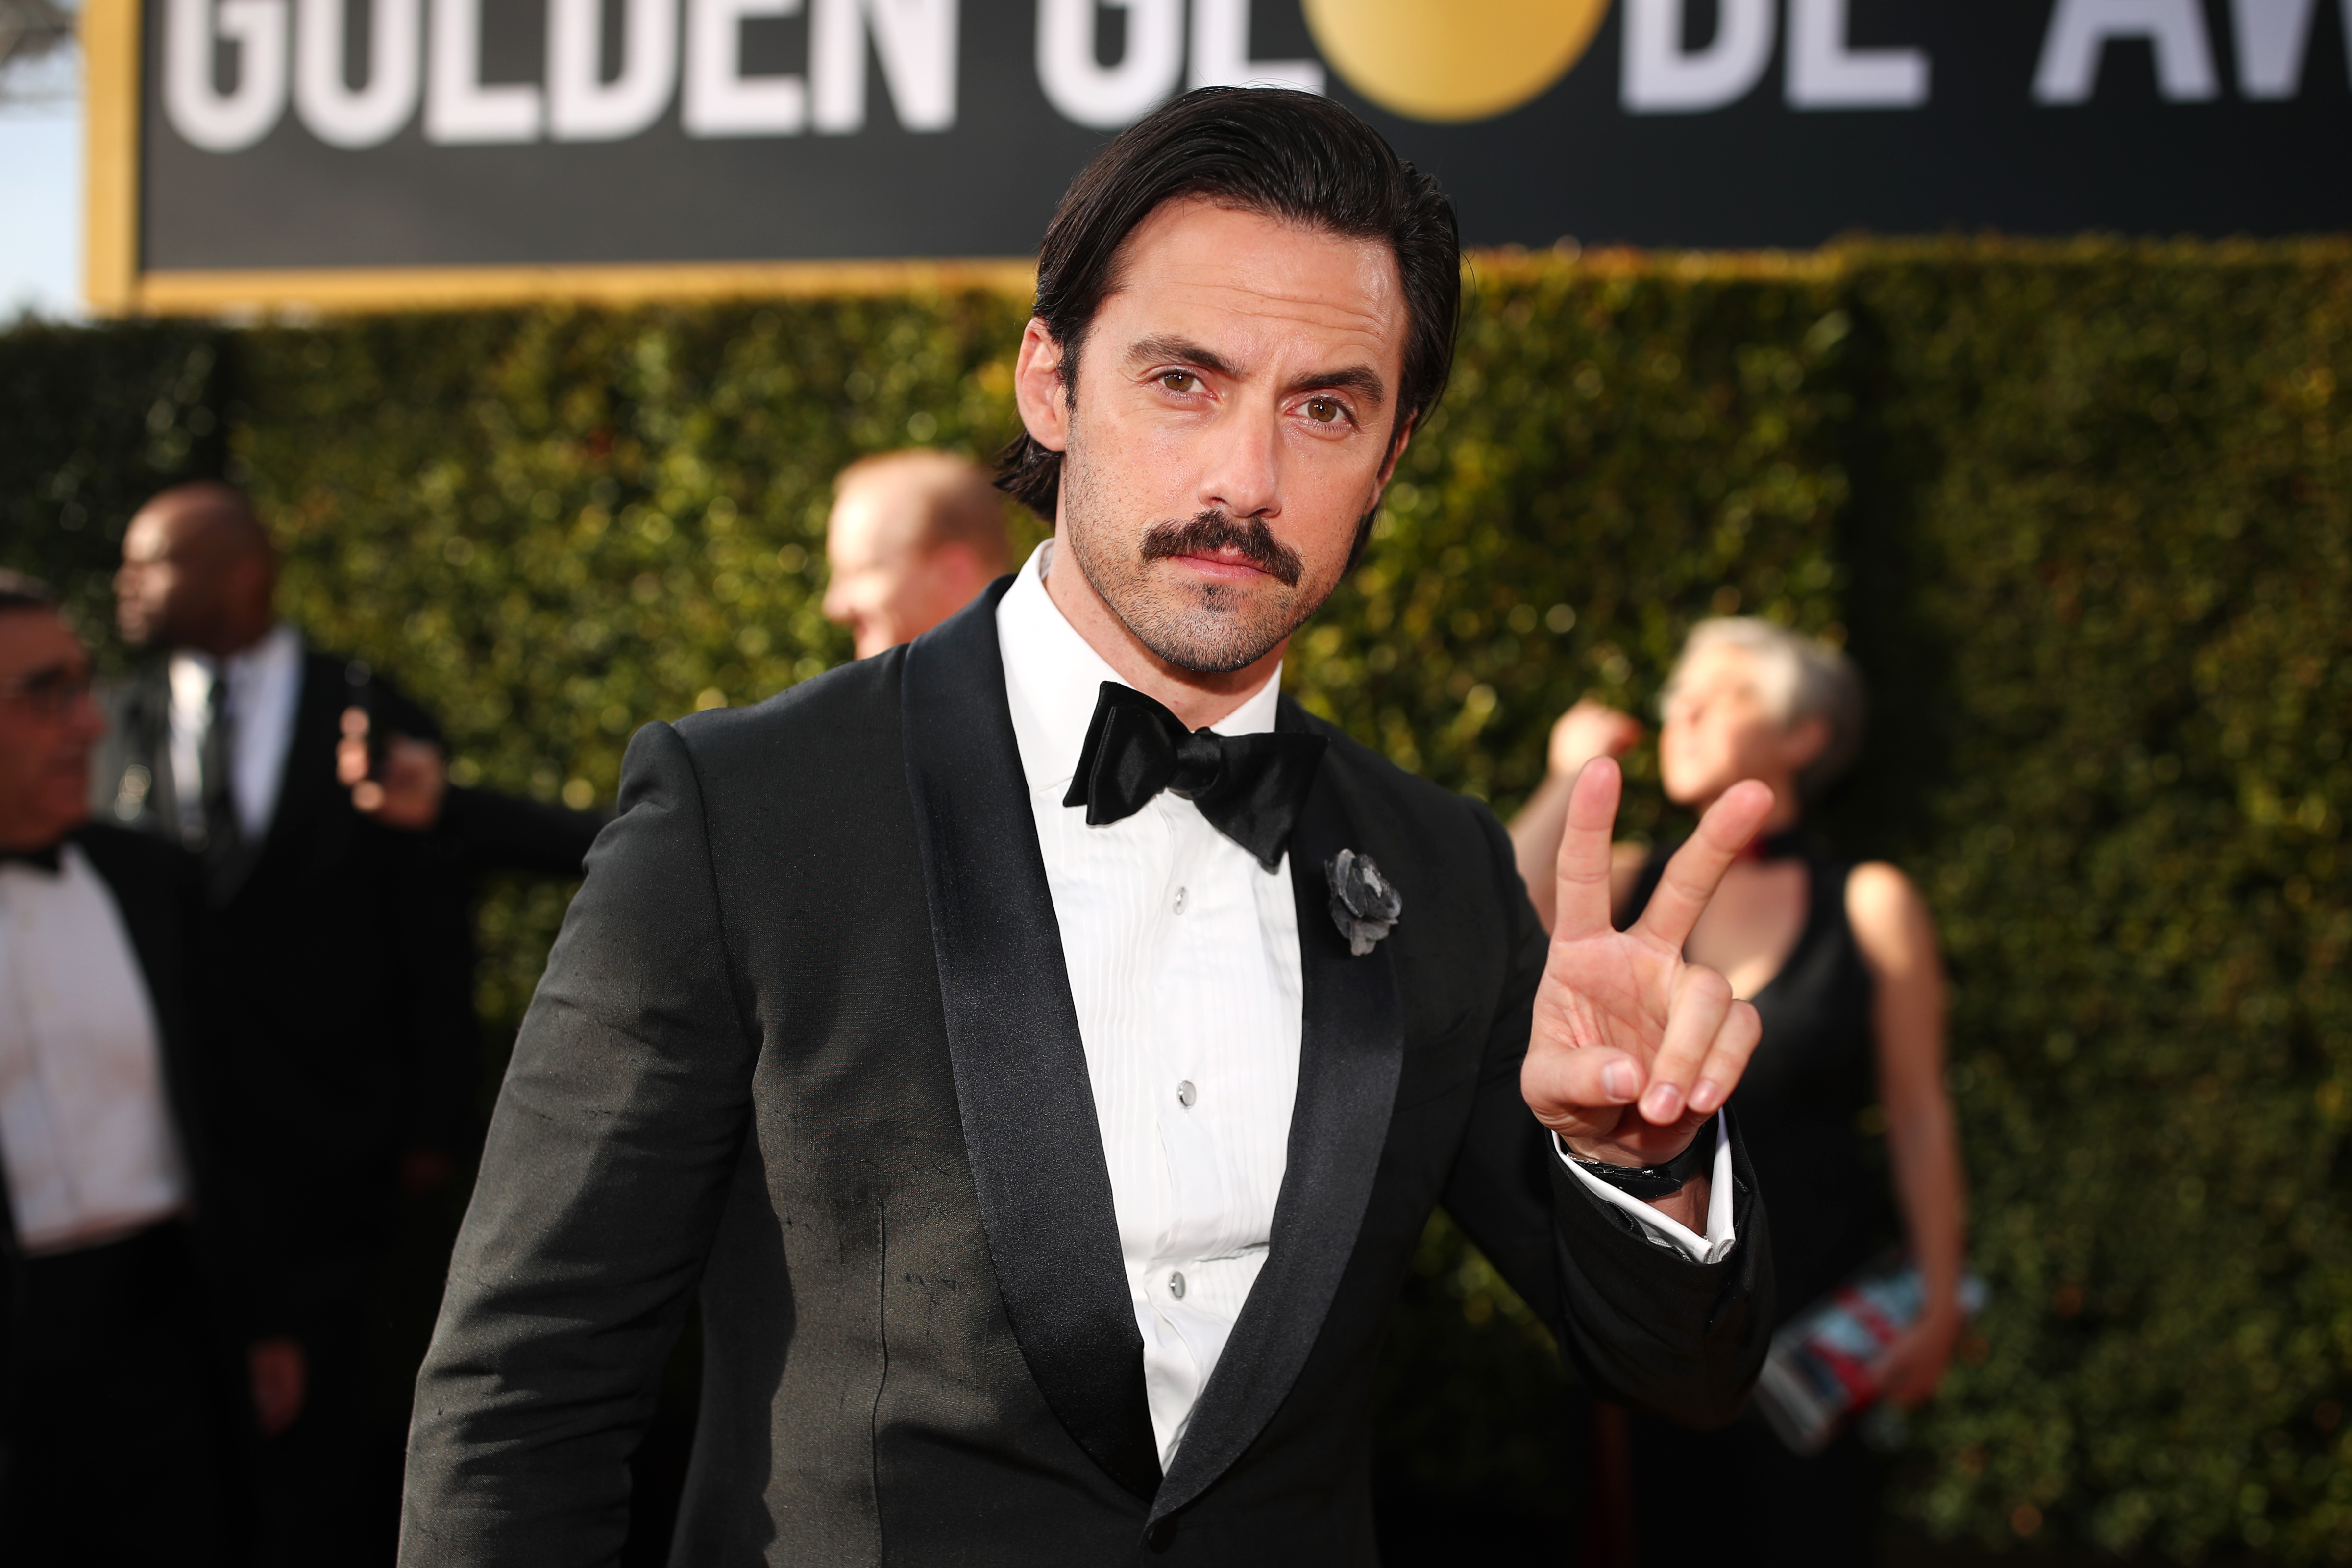 Milo Ventimiglia arrives to the 75th Annual Golden Globe Awards held at the Beverly Hilton Hotel on January 7, 2018